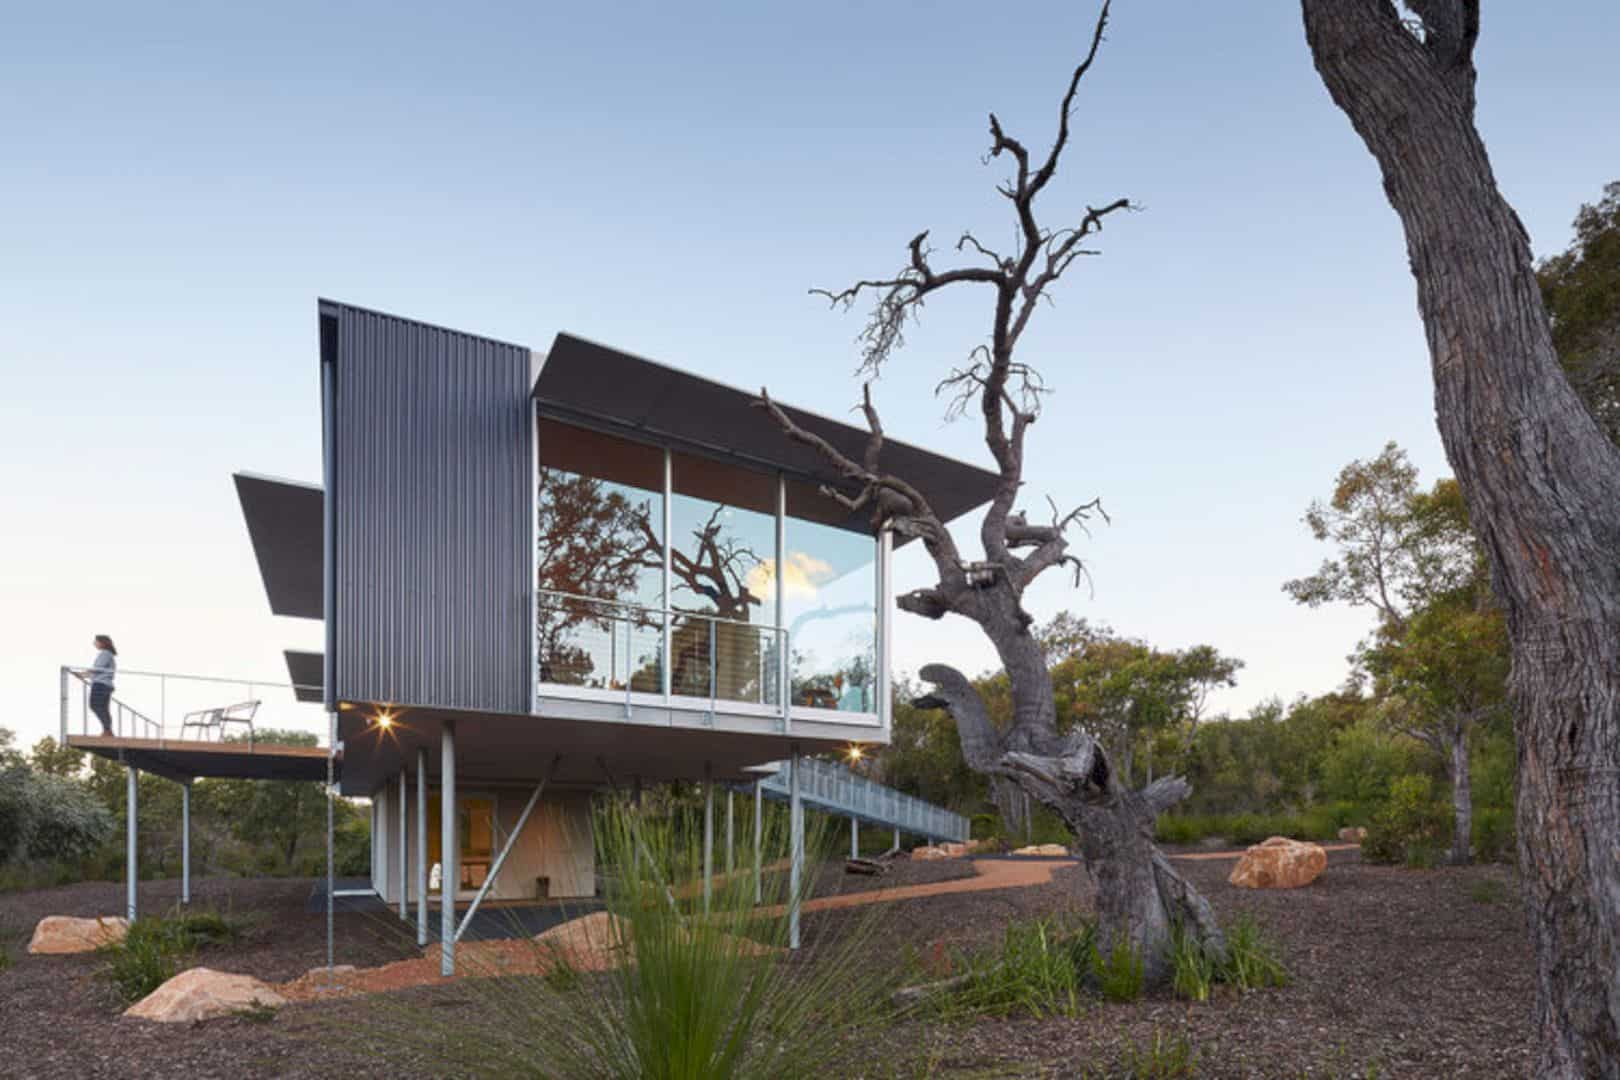 Wilderness House: A Modern House with Large Area of Glass and Modernist Elevated Platform